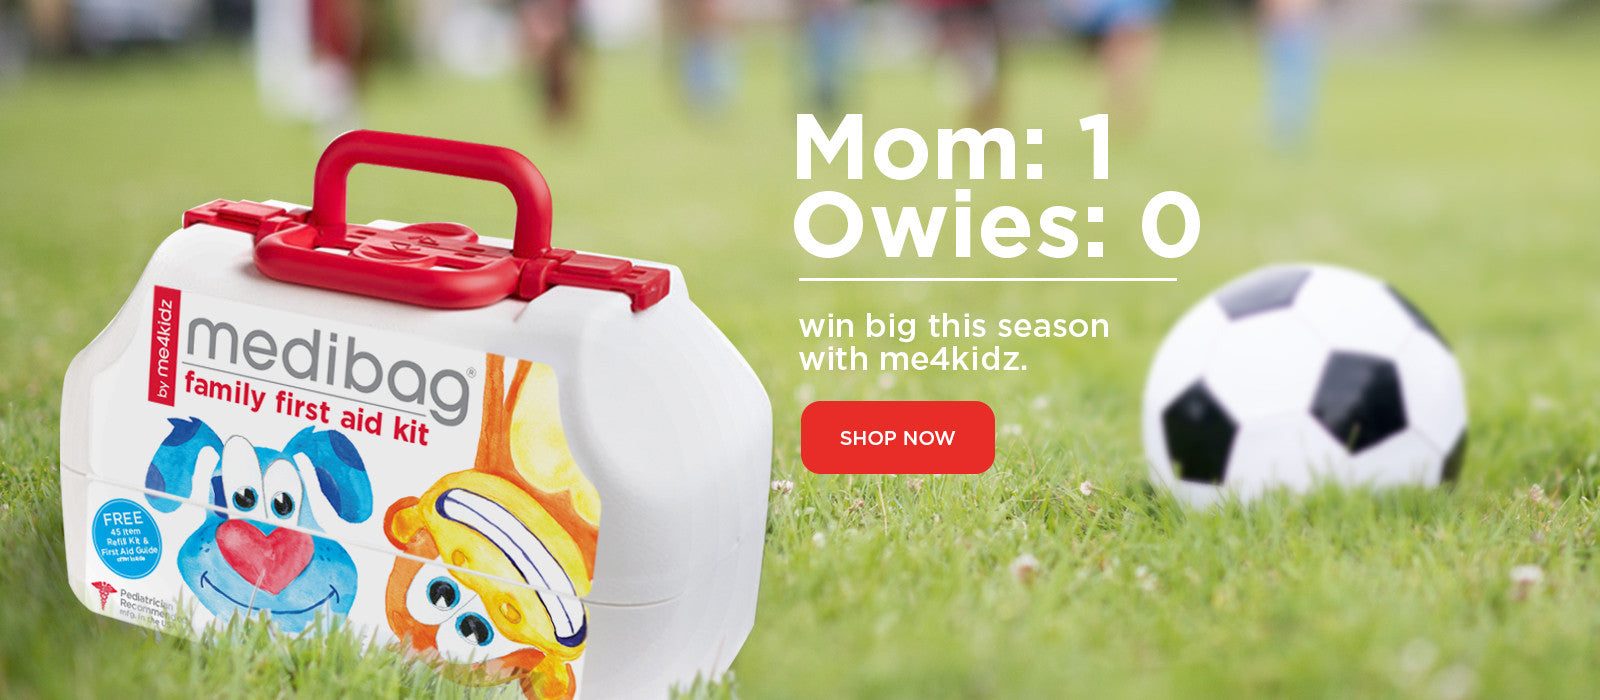 Moms =1 Owies = 0 - Shop now